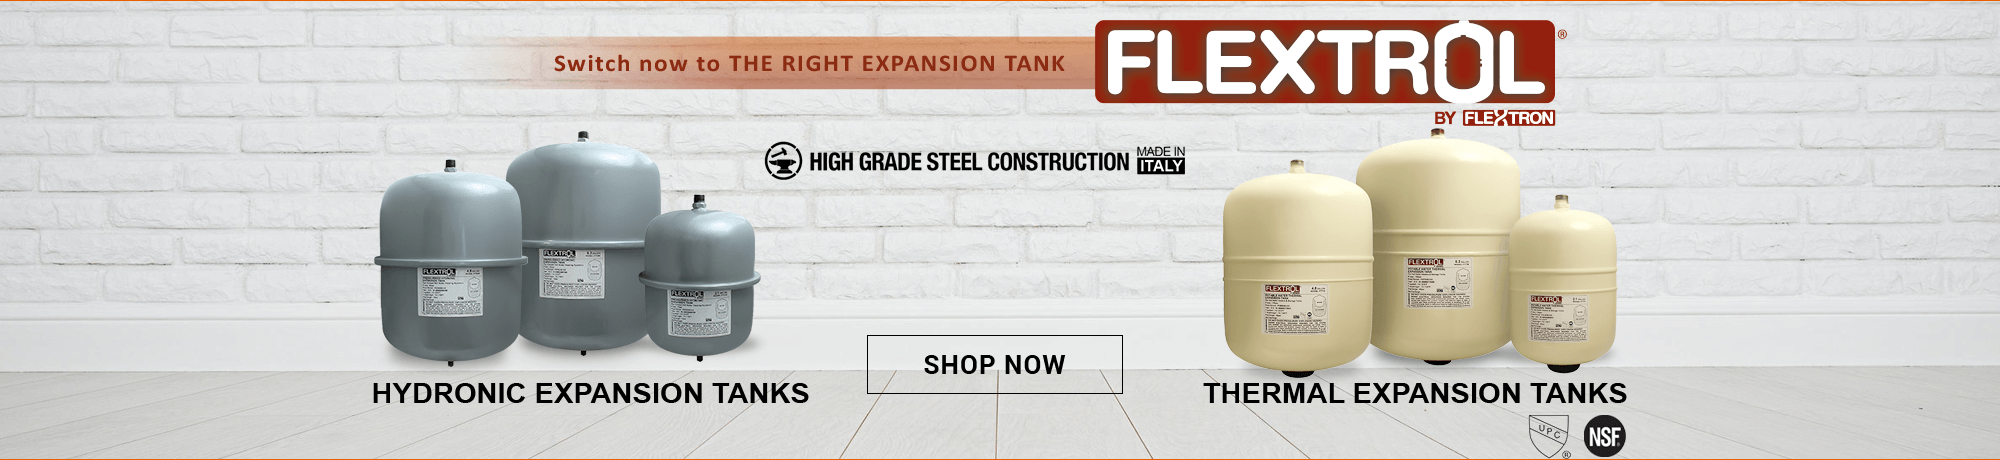 Switch now to THE RIGHT EXPANSION TANK . SHOP NOW